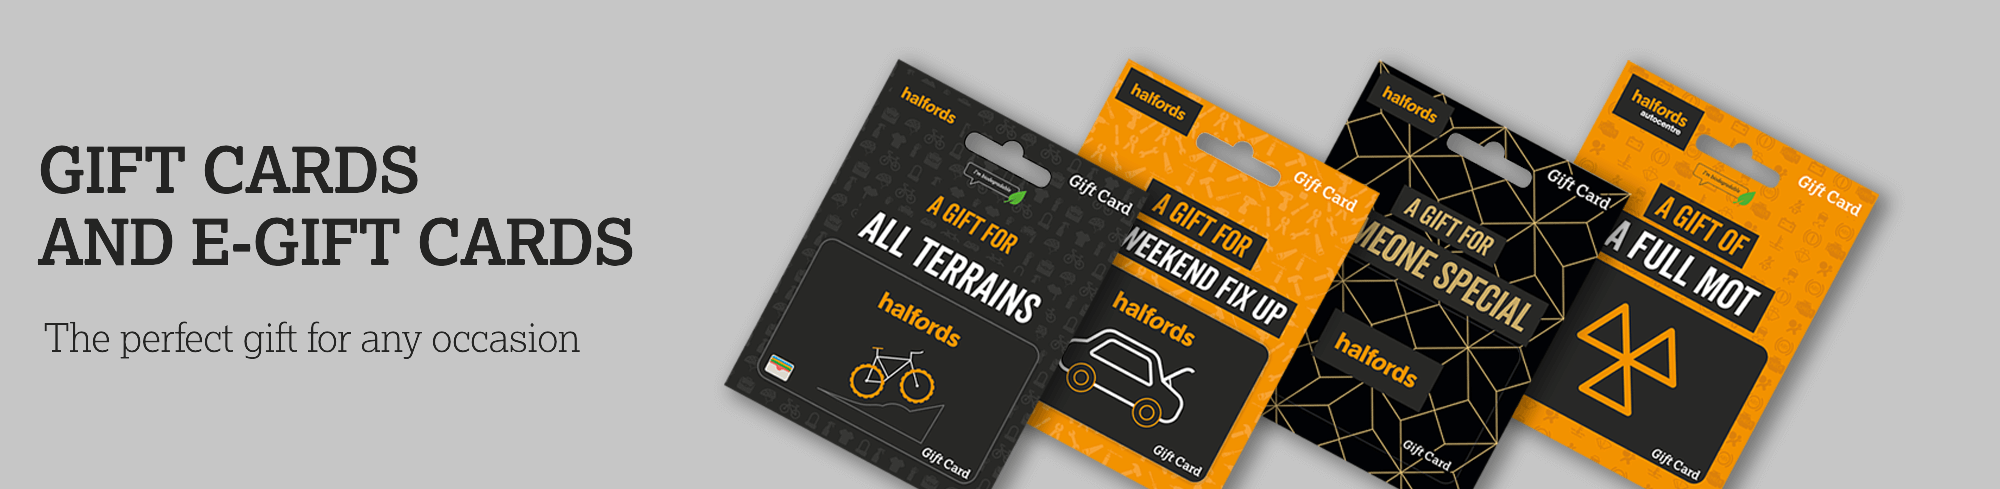 Halfords Gift Card Banner